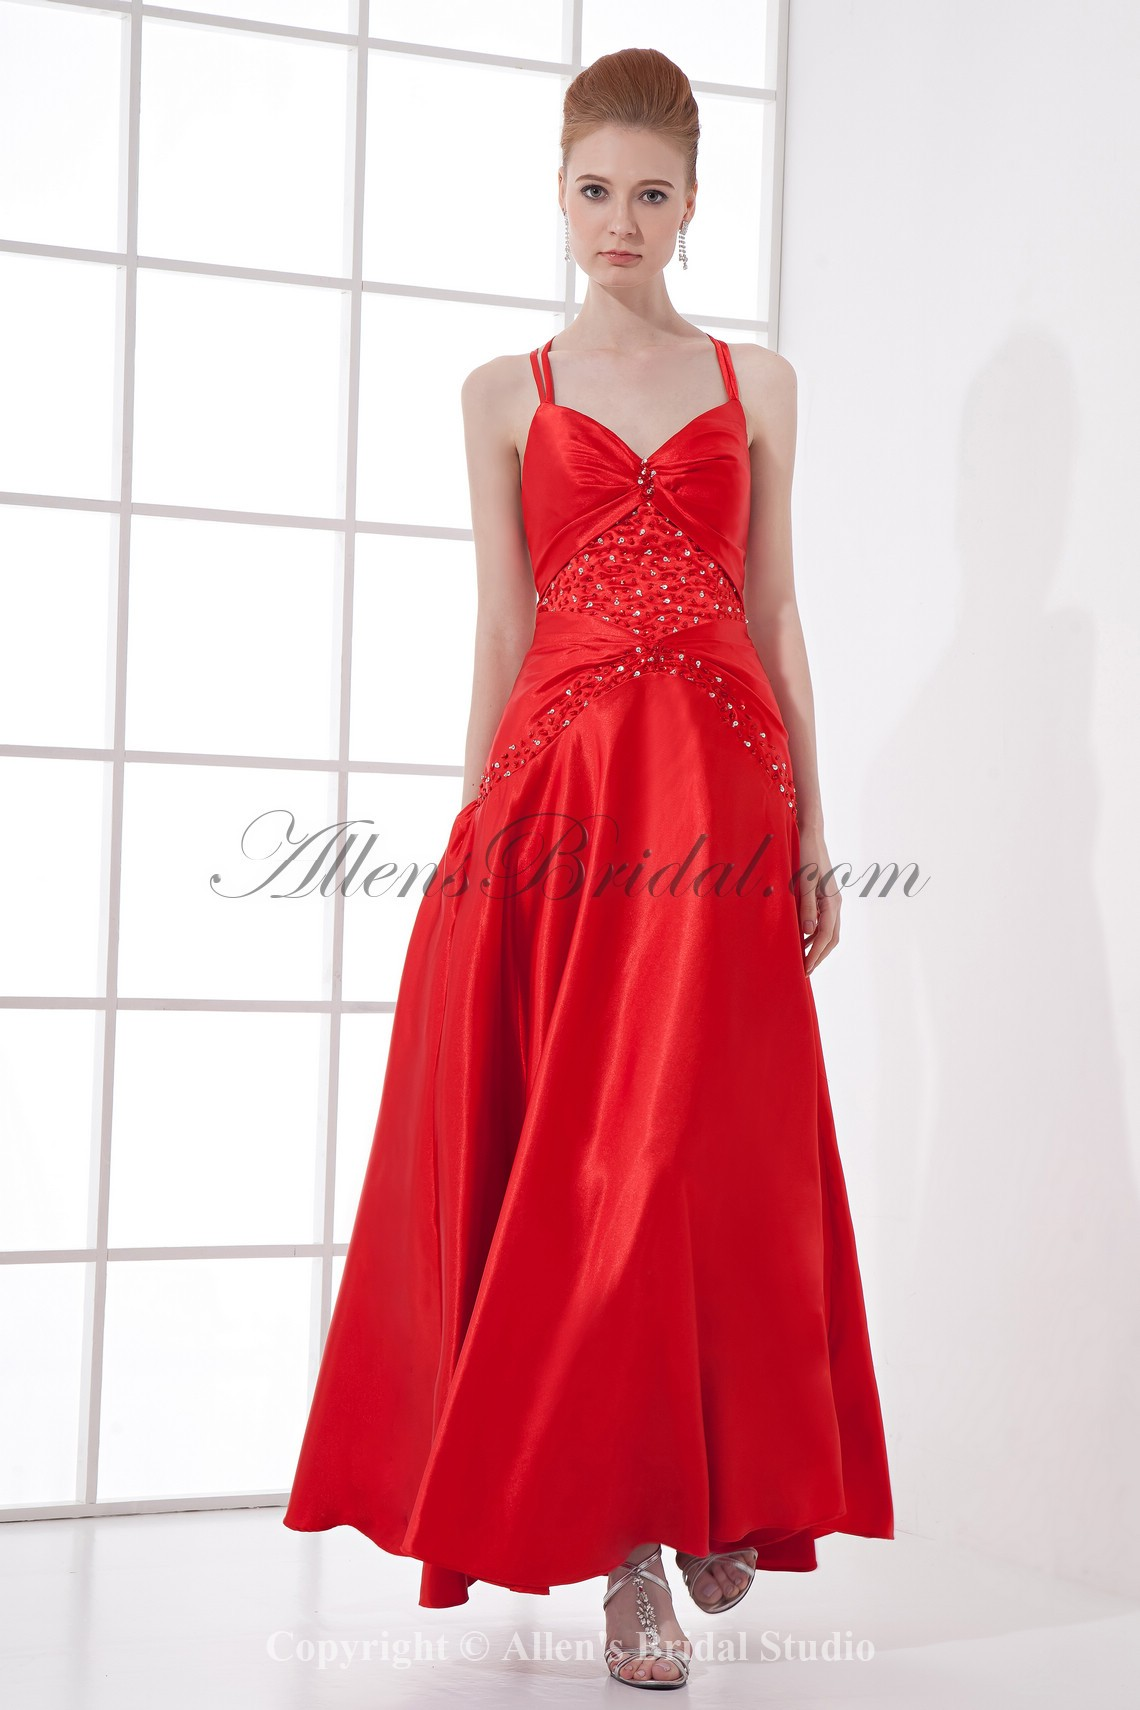 /72-569/satin-spaghetti-neckline-a-line-ankle-length-sequins-prom-dress.jpg